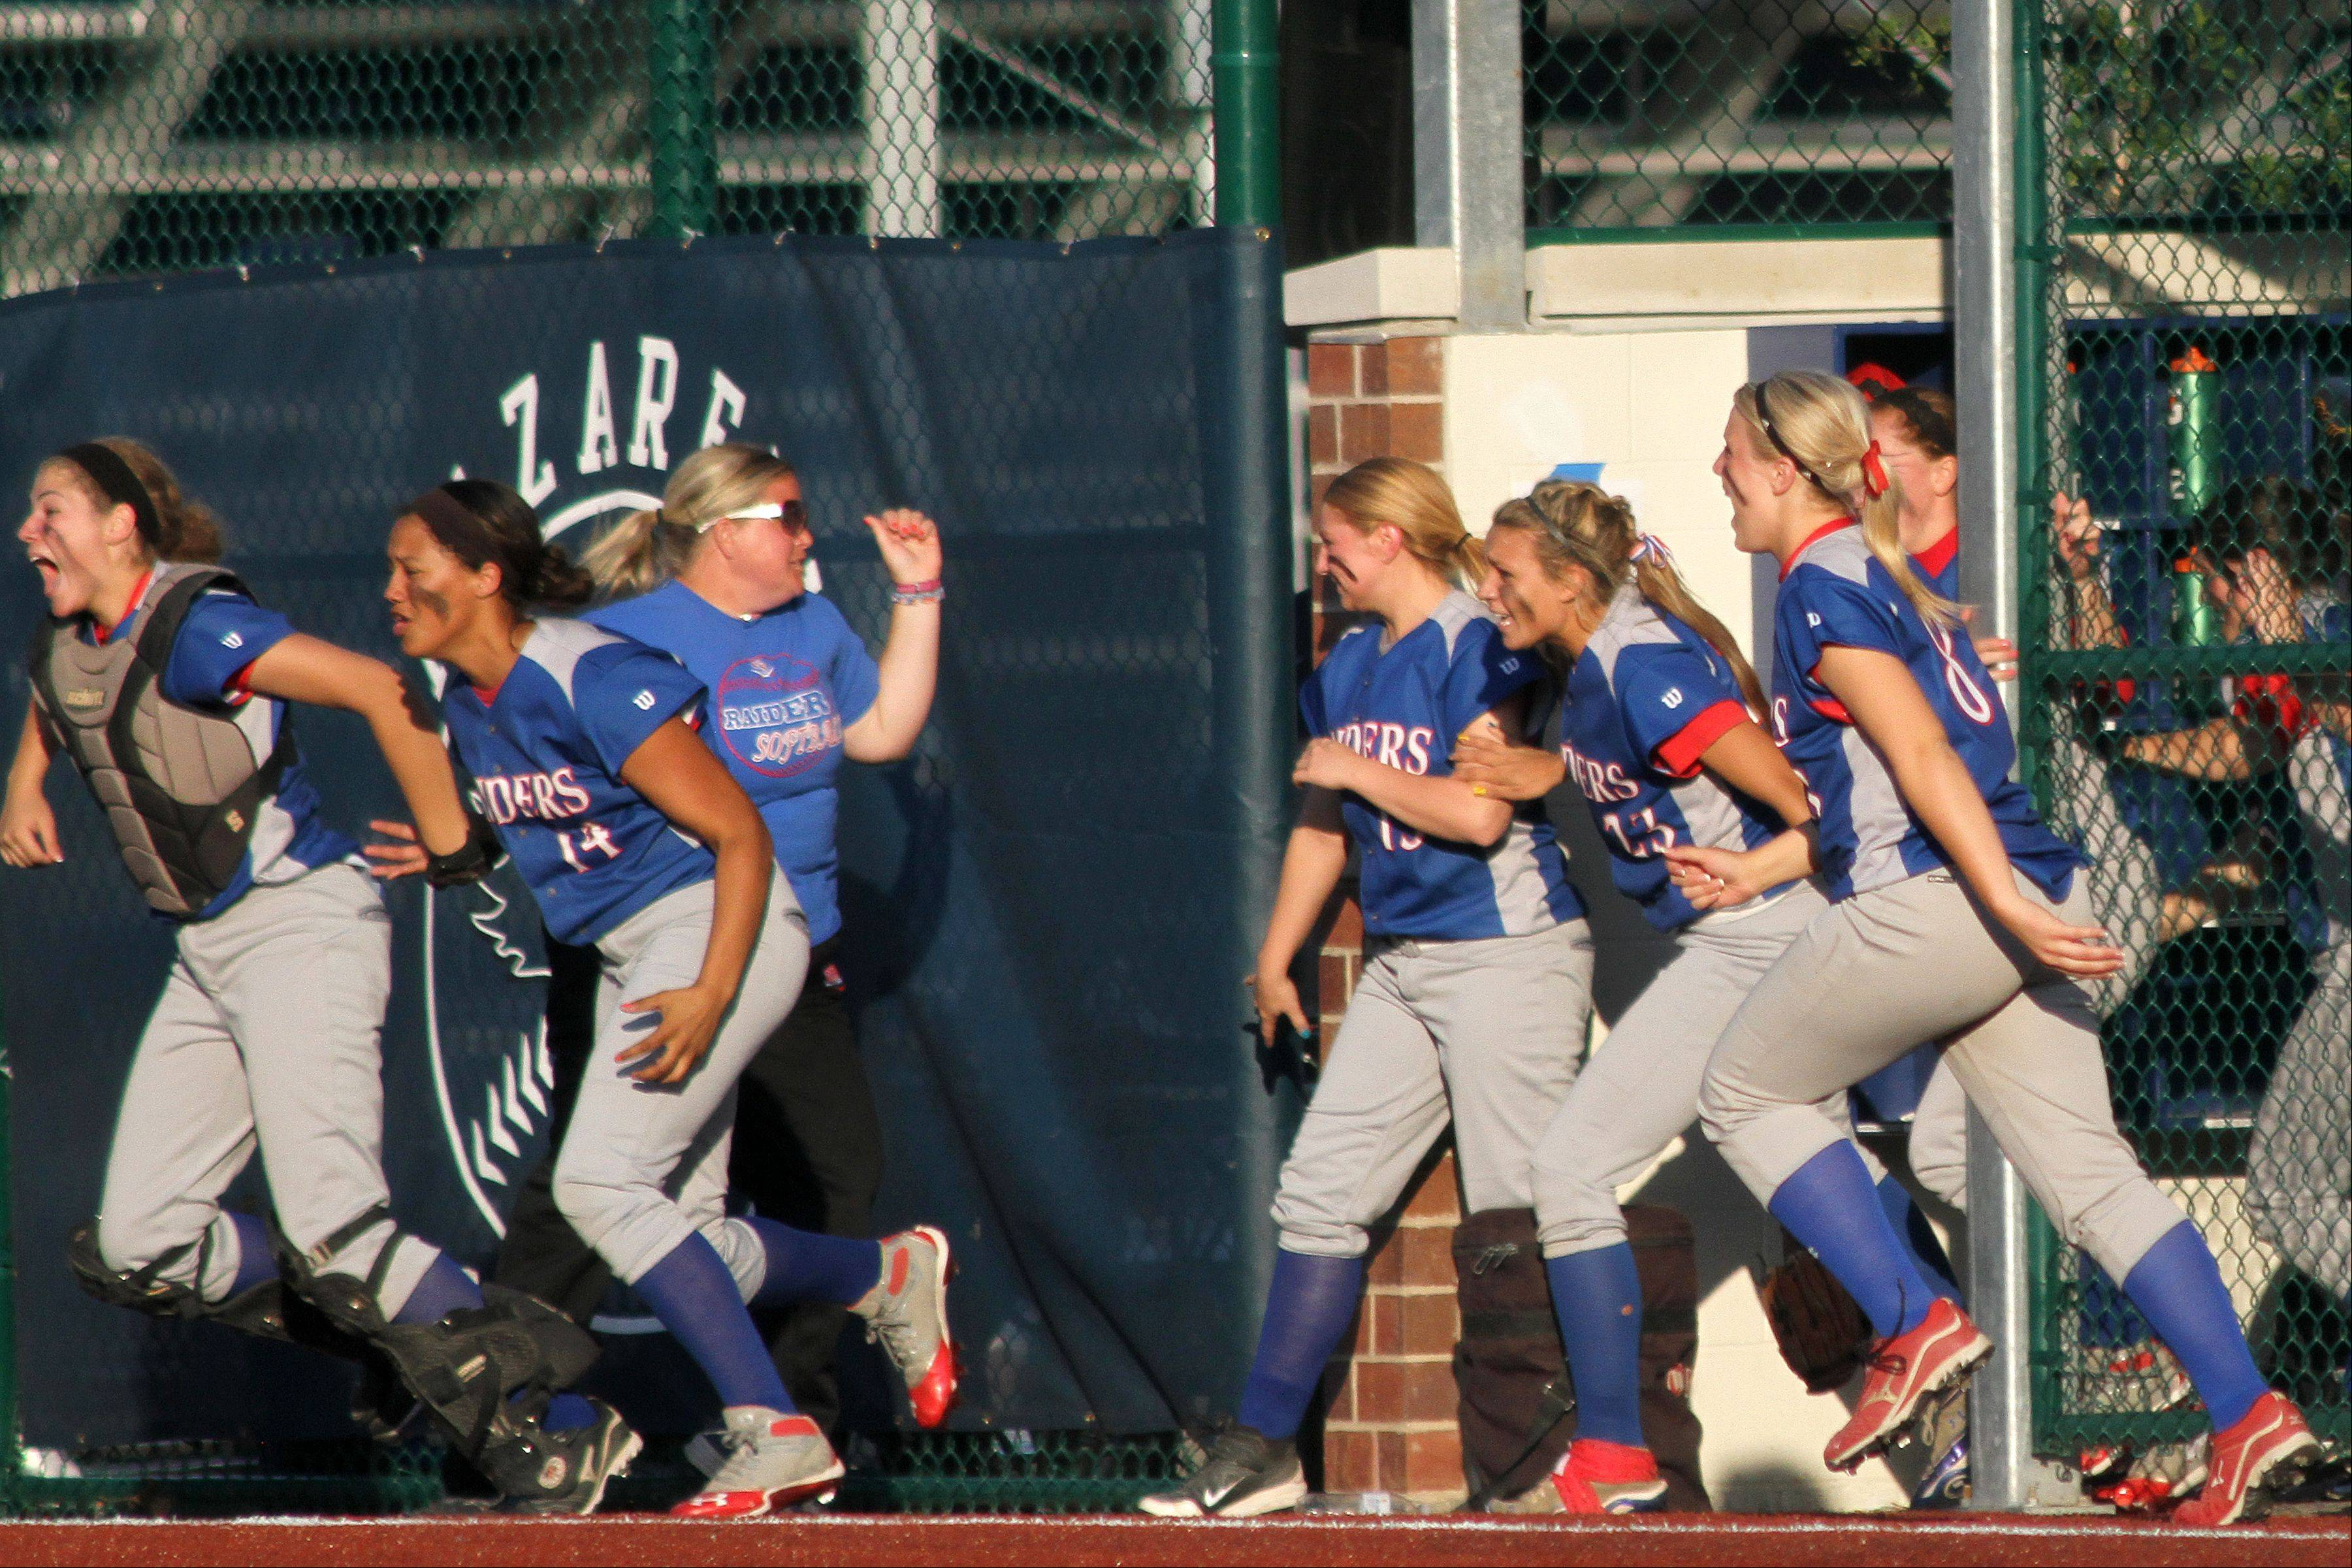 Glenbard South High School girls softball team runs from their dugout after beating Fenwick High School 2-1 in the 11th inning at the Class 3A Girls Softball Super-sectional game on Monday, June 3, 2013 at Nazareth Academy in LaGrange Park.